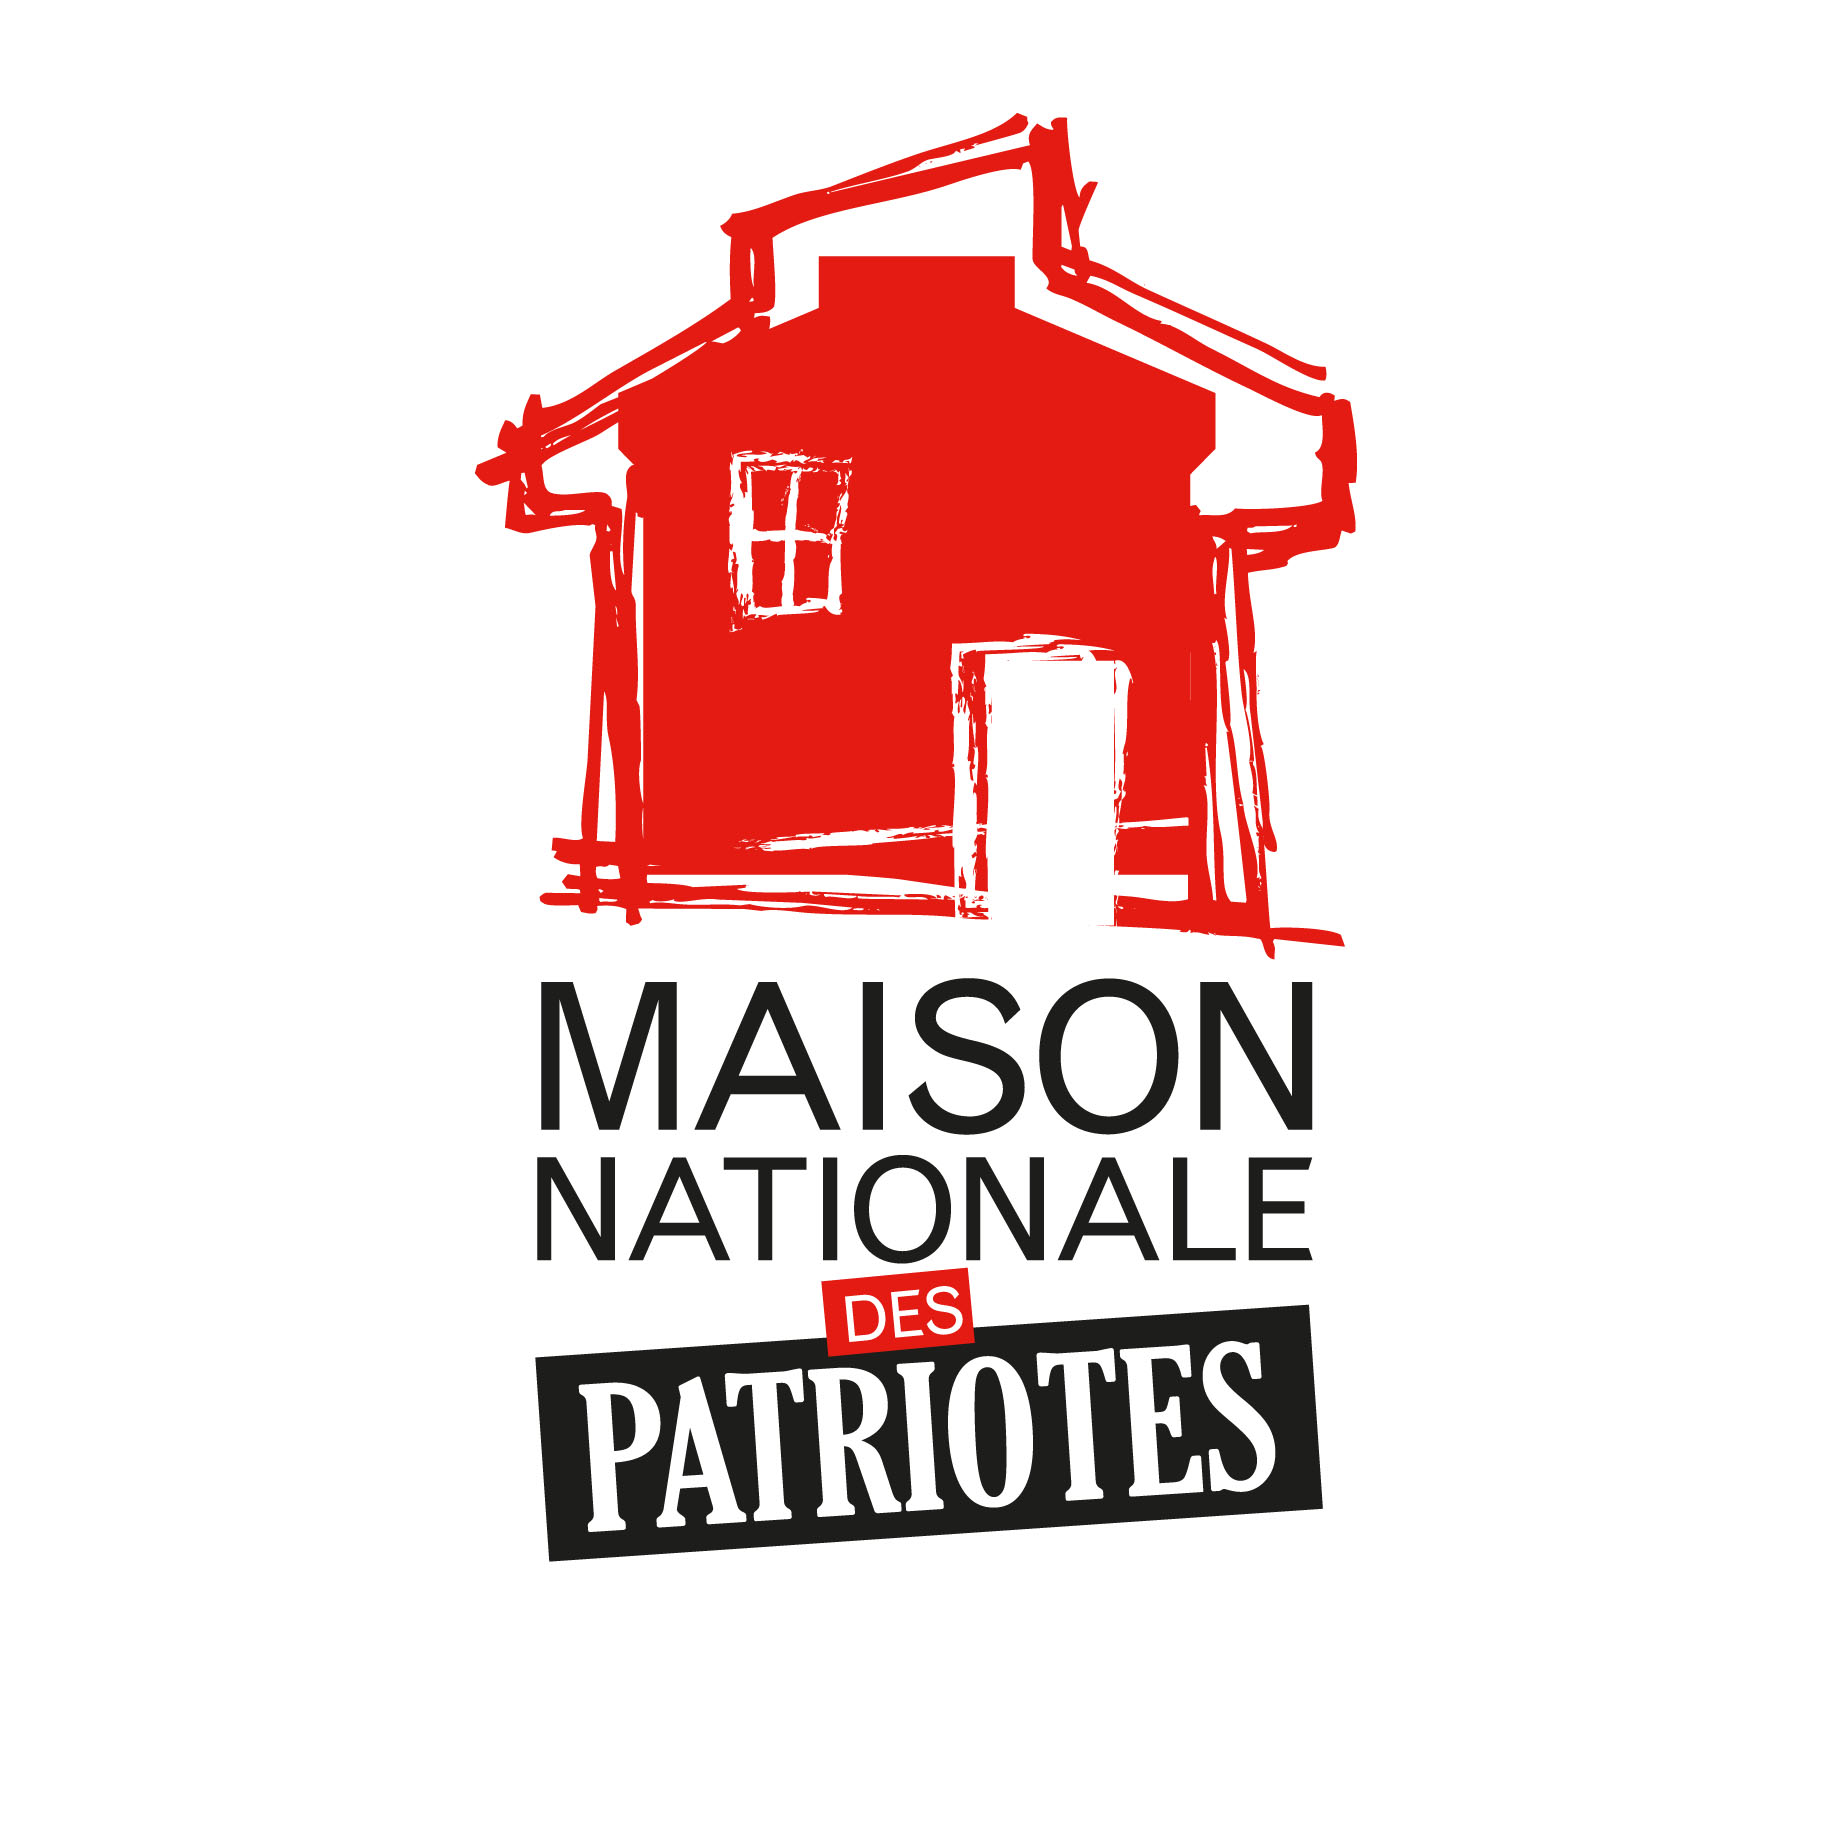 Maison Nationale des Patriotes